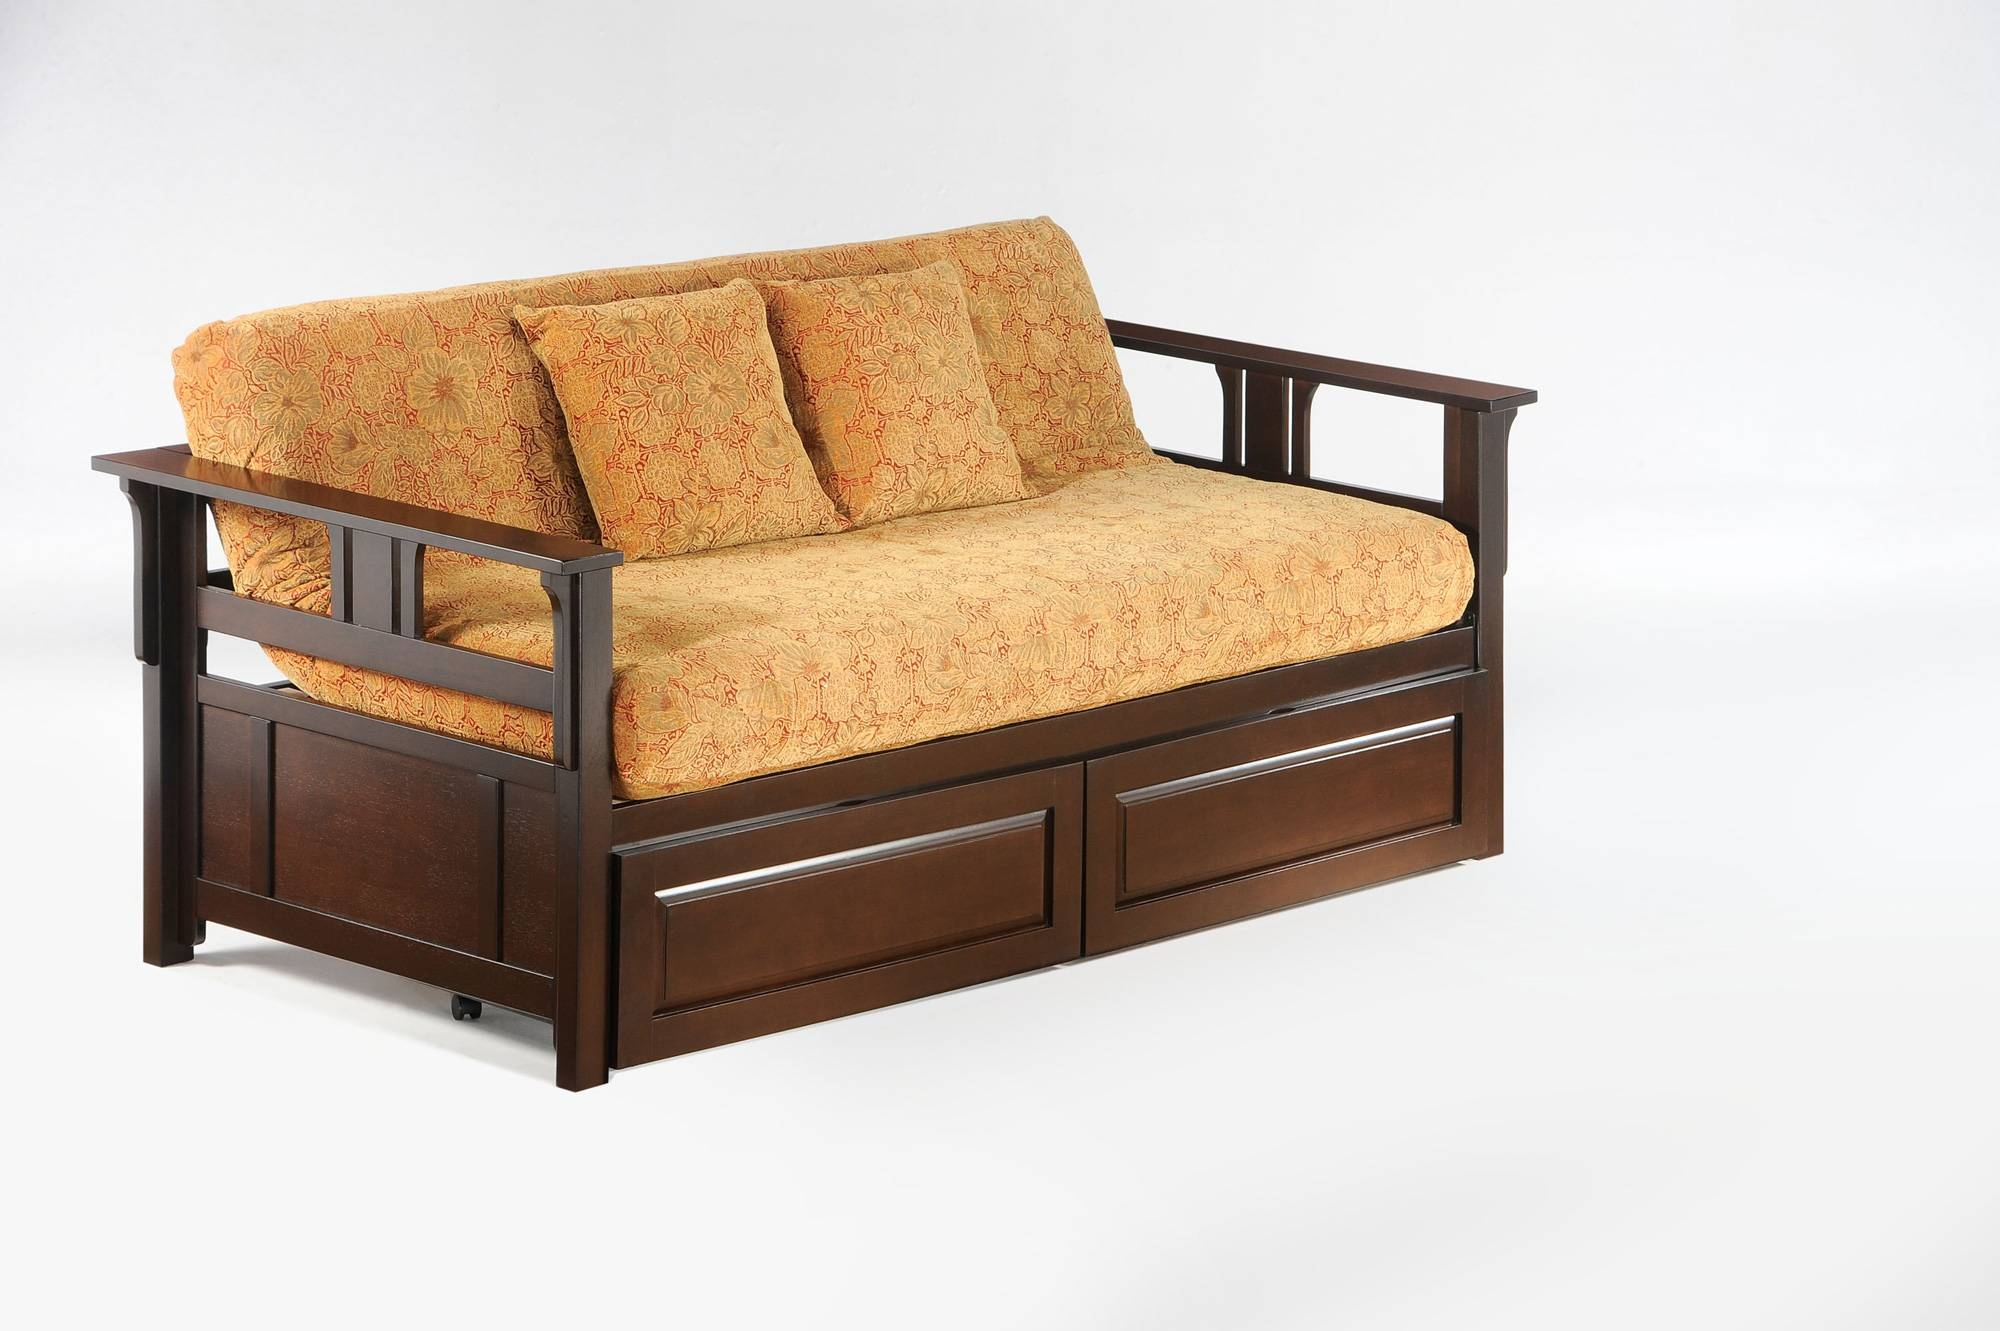 Sofa Daybed Frame With Storage Full Size Brimnes Twin Frames | Fonky pertaining to Sofa Day Beds (Image 27 of 30)